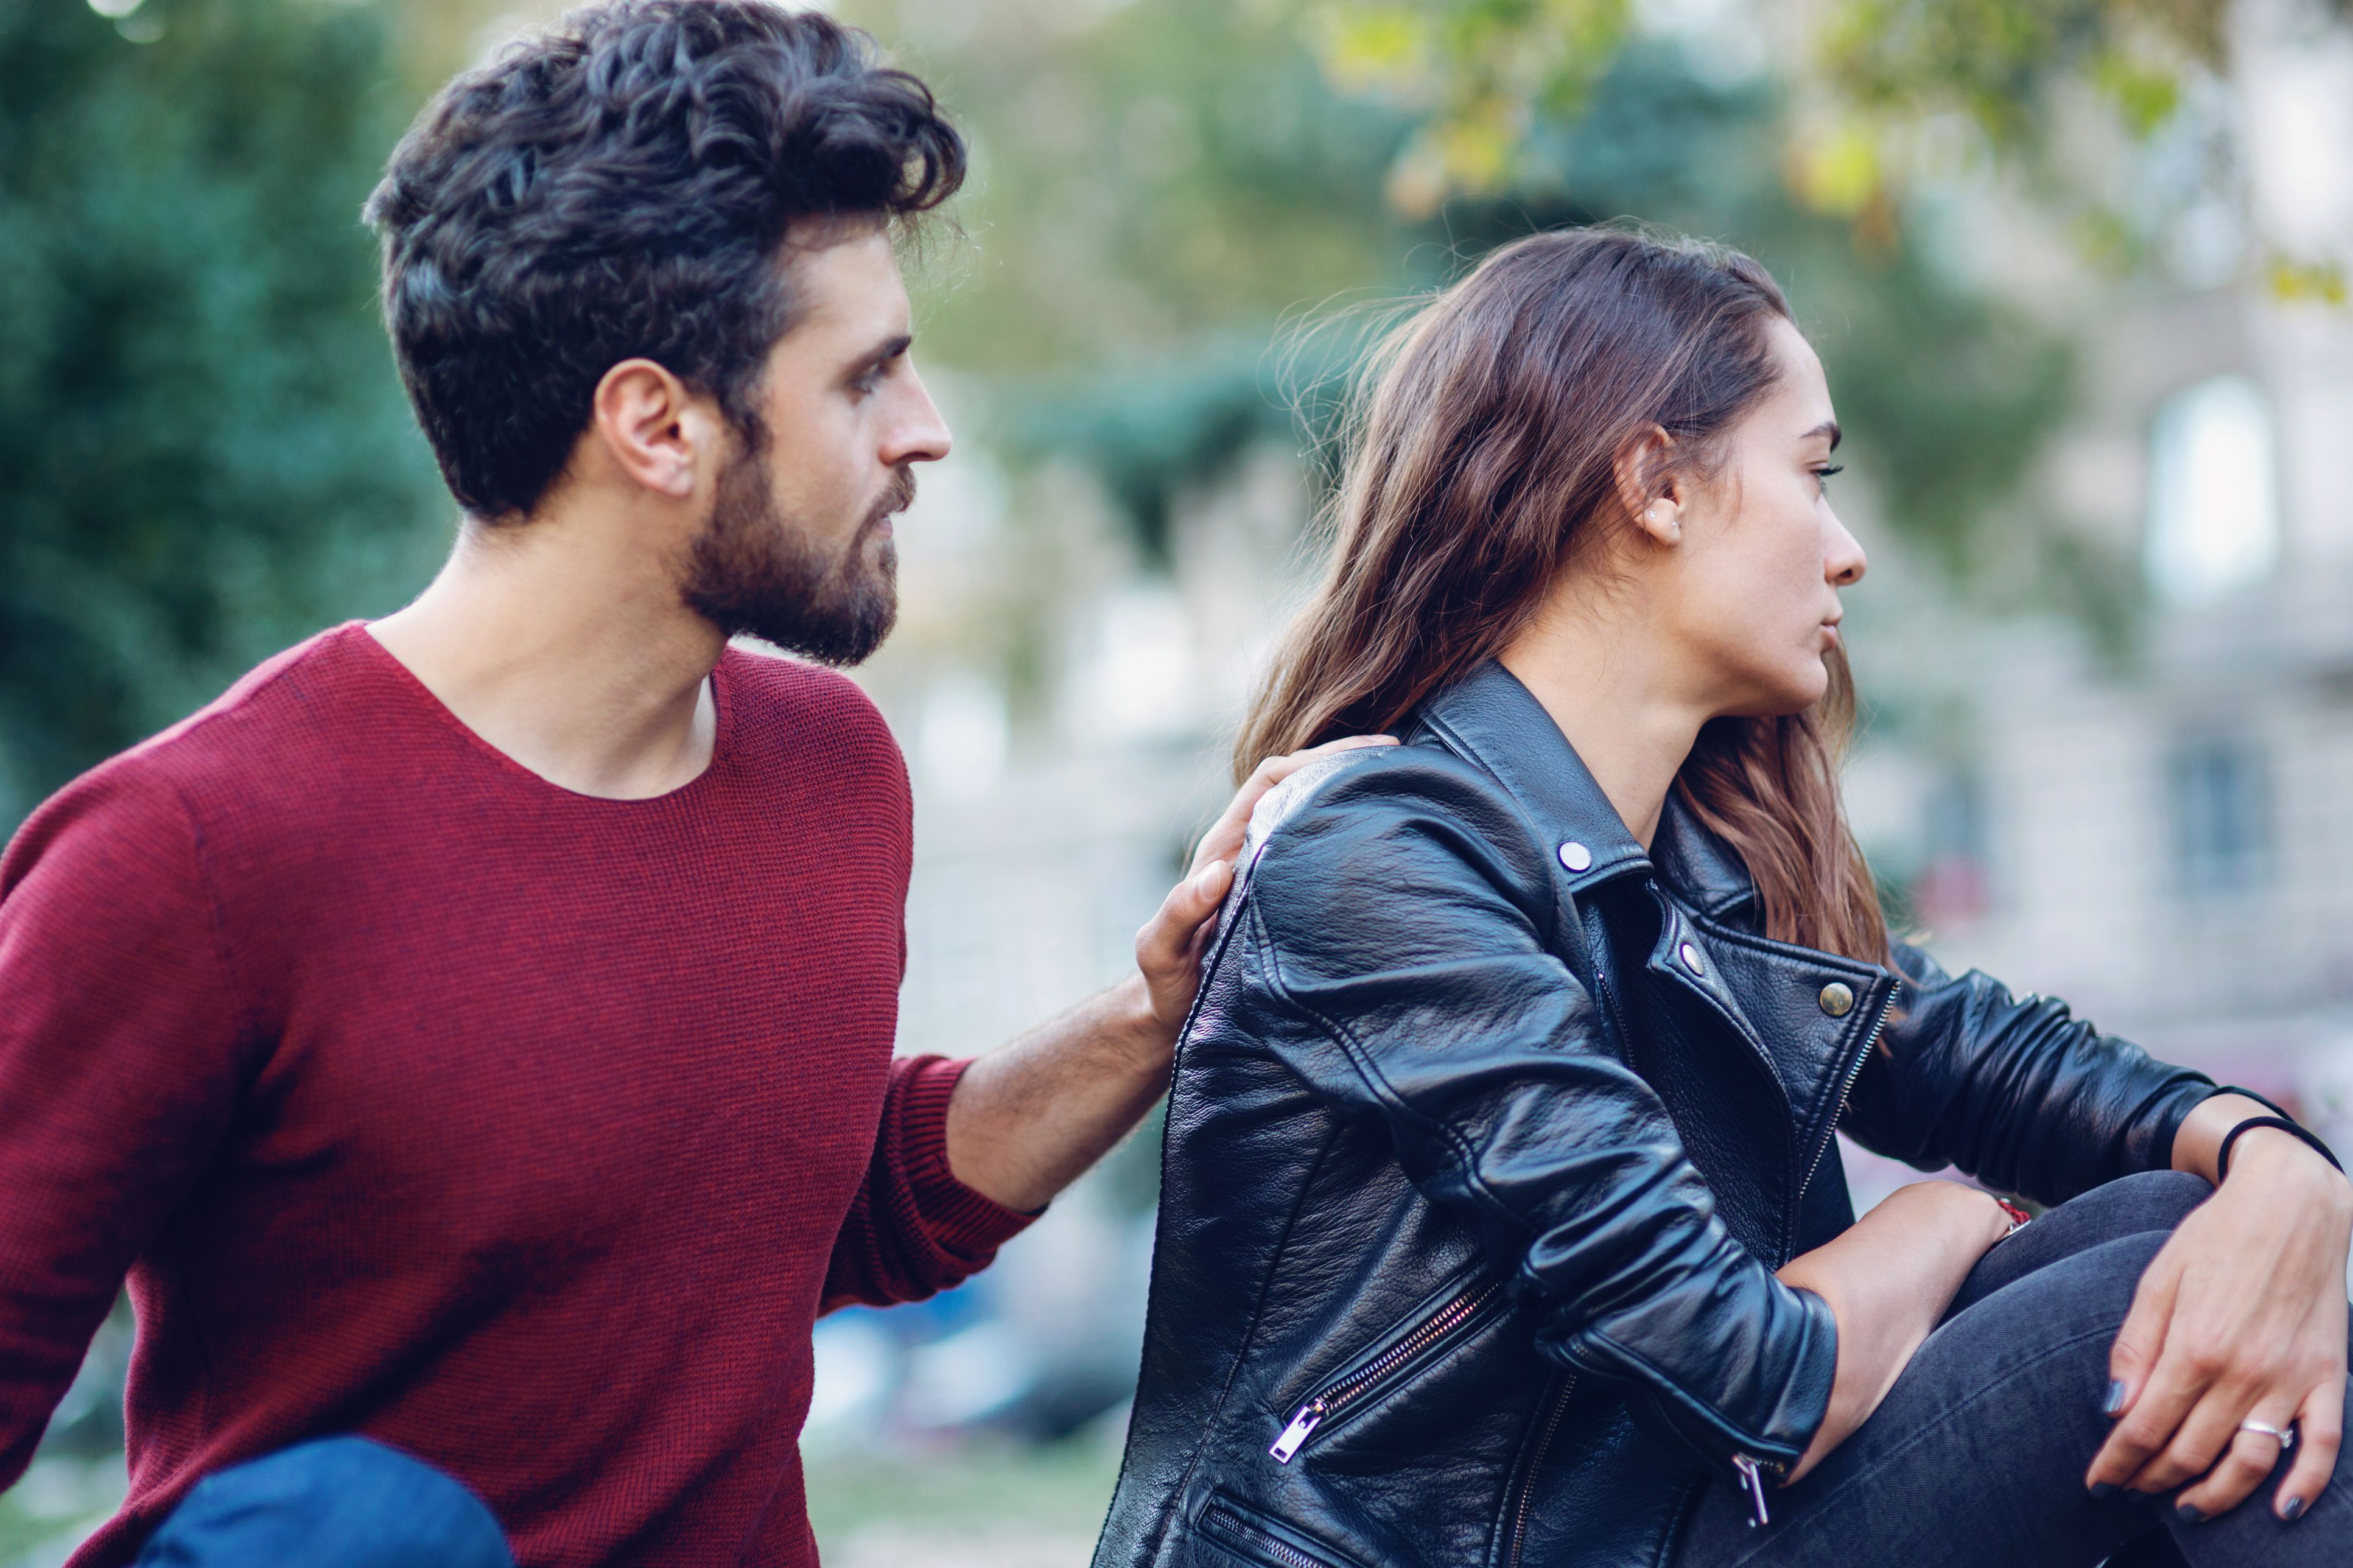 Warning Signs Your Spouse Could Be Cheating